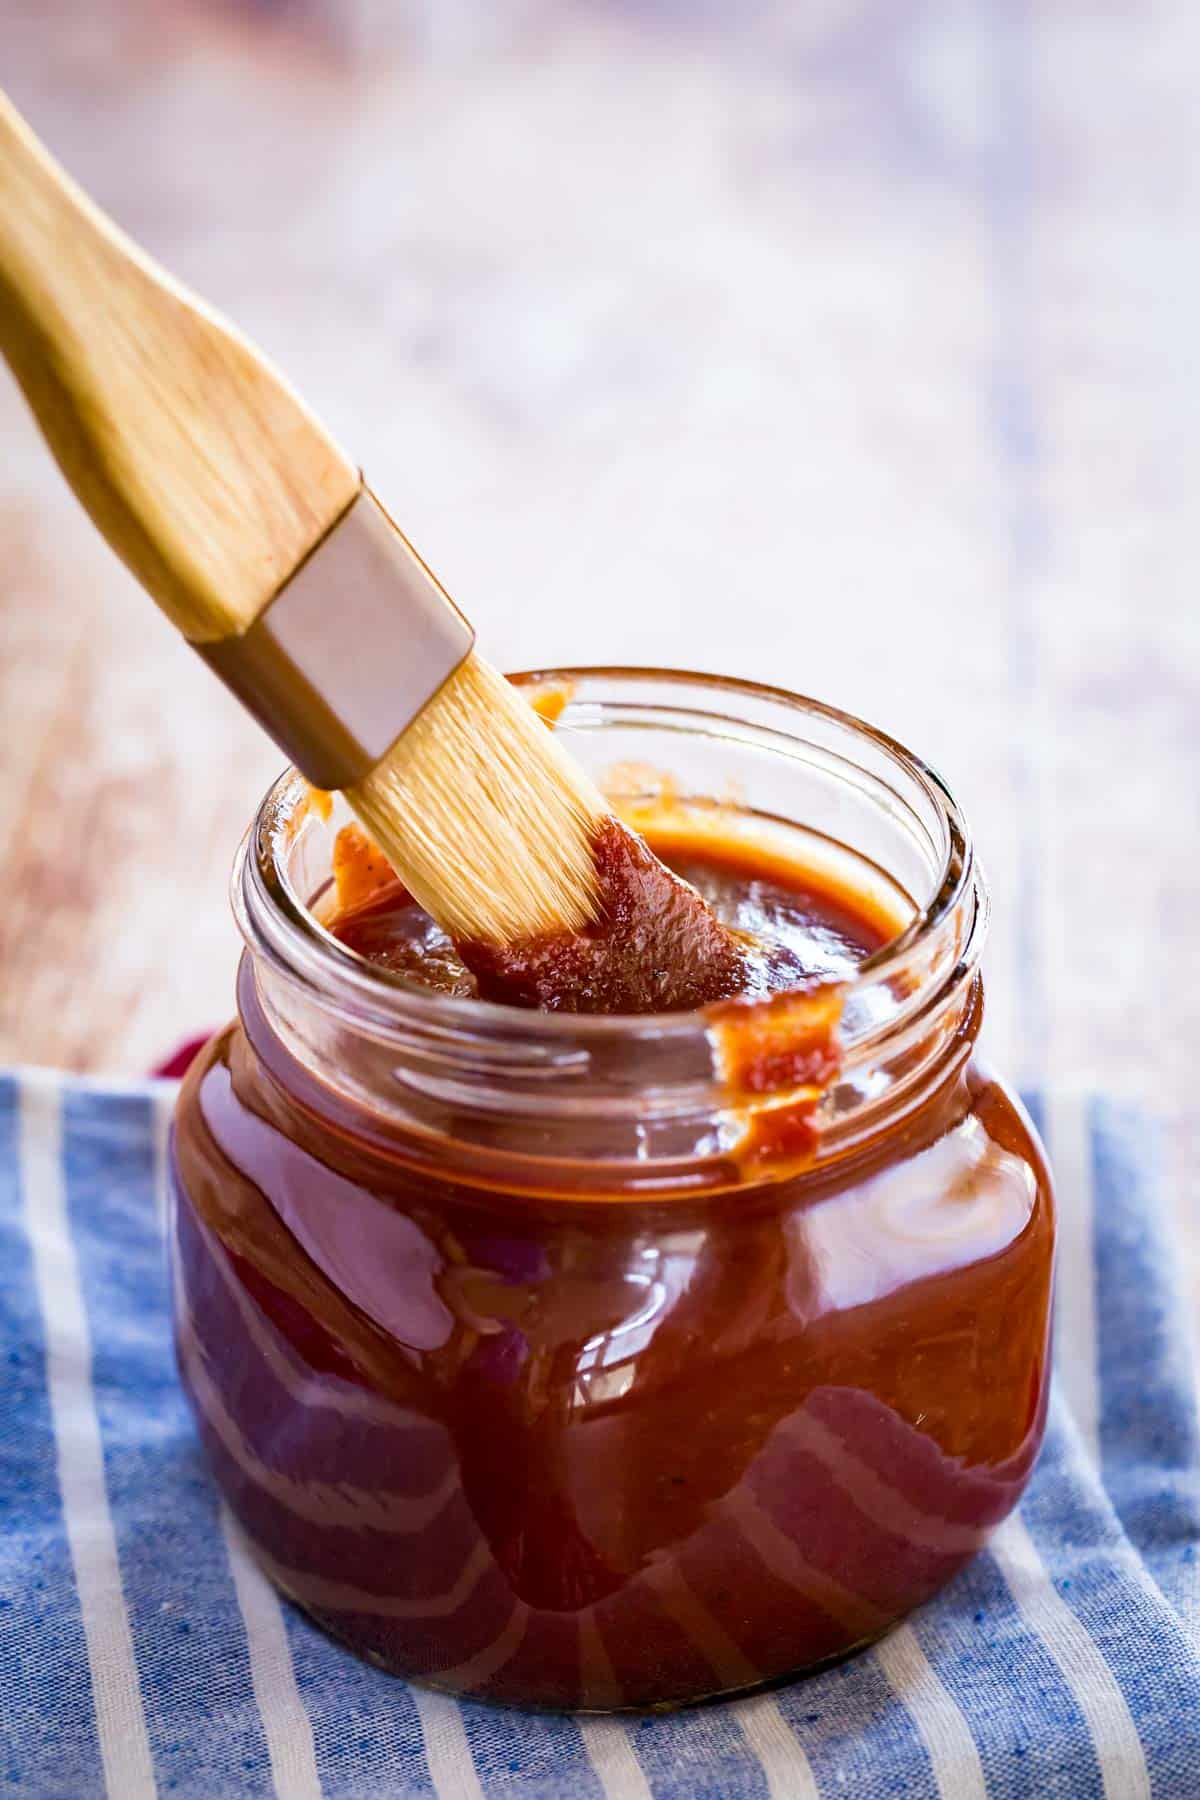 brush dunked into a glass jar of bourbon bbq on a white and blue striped cloth napkin